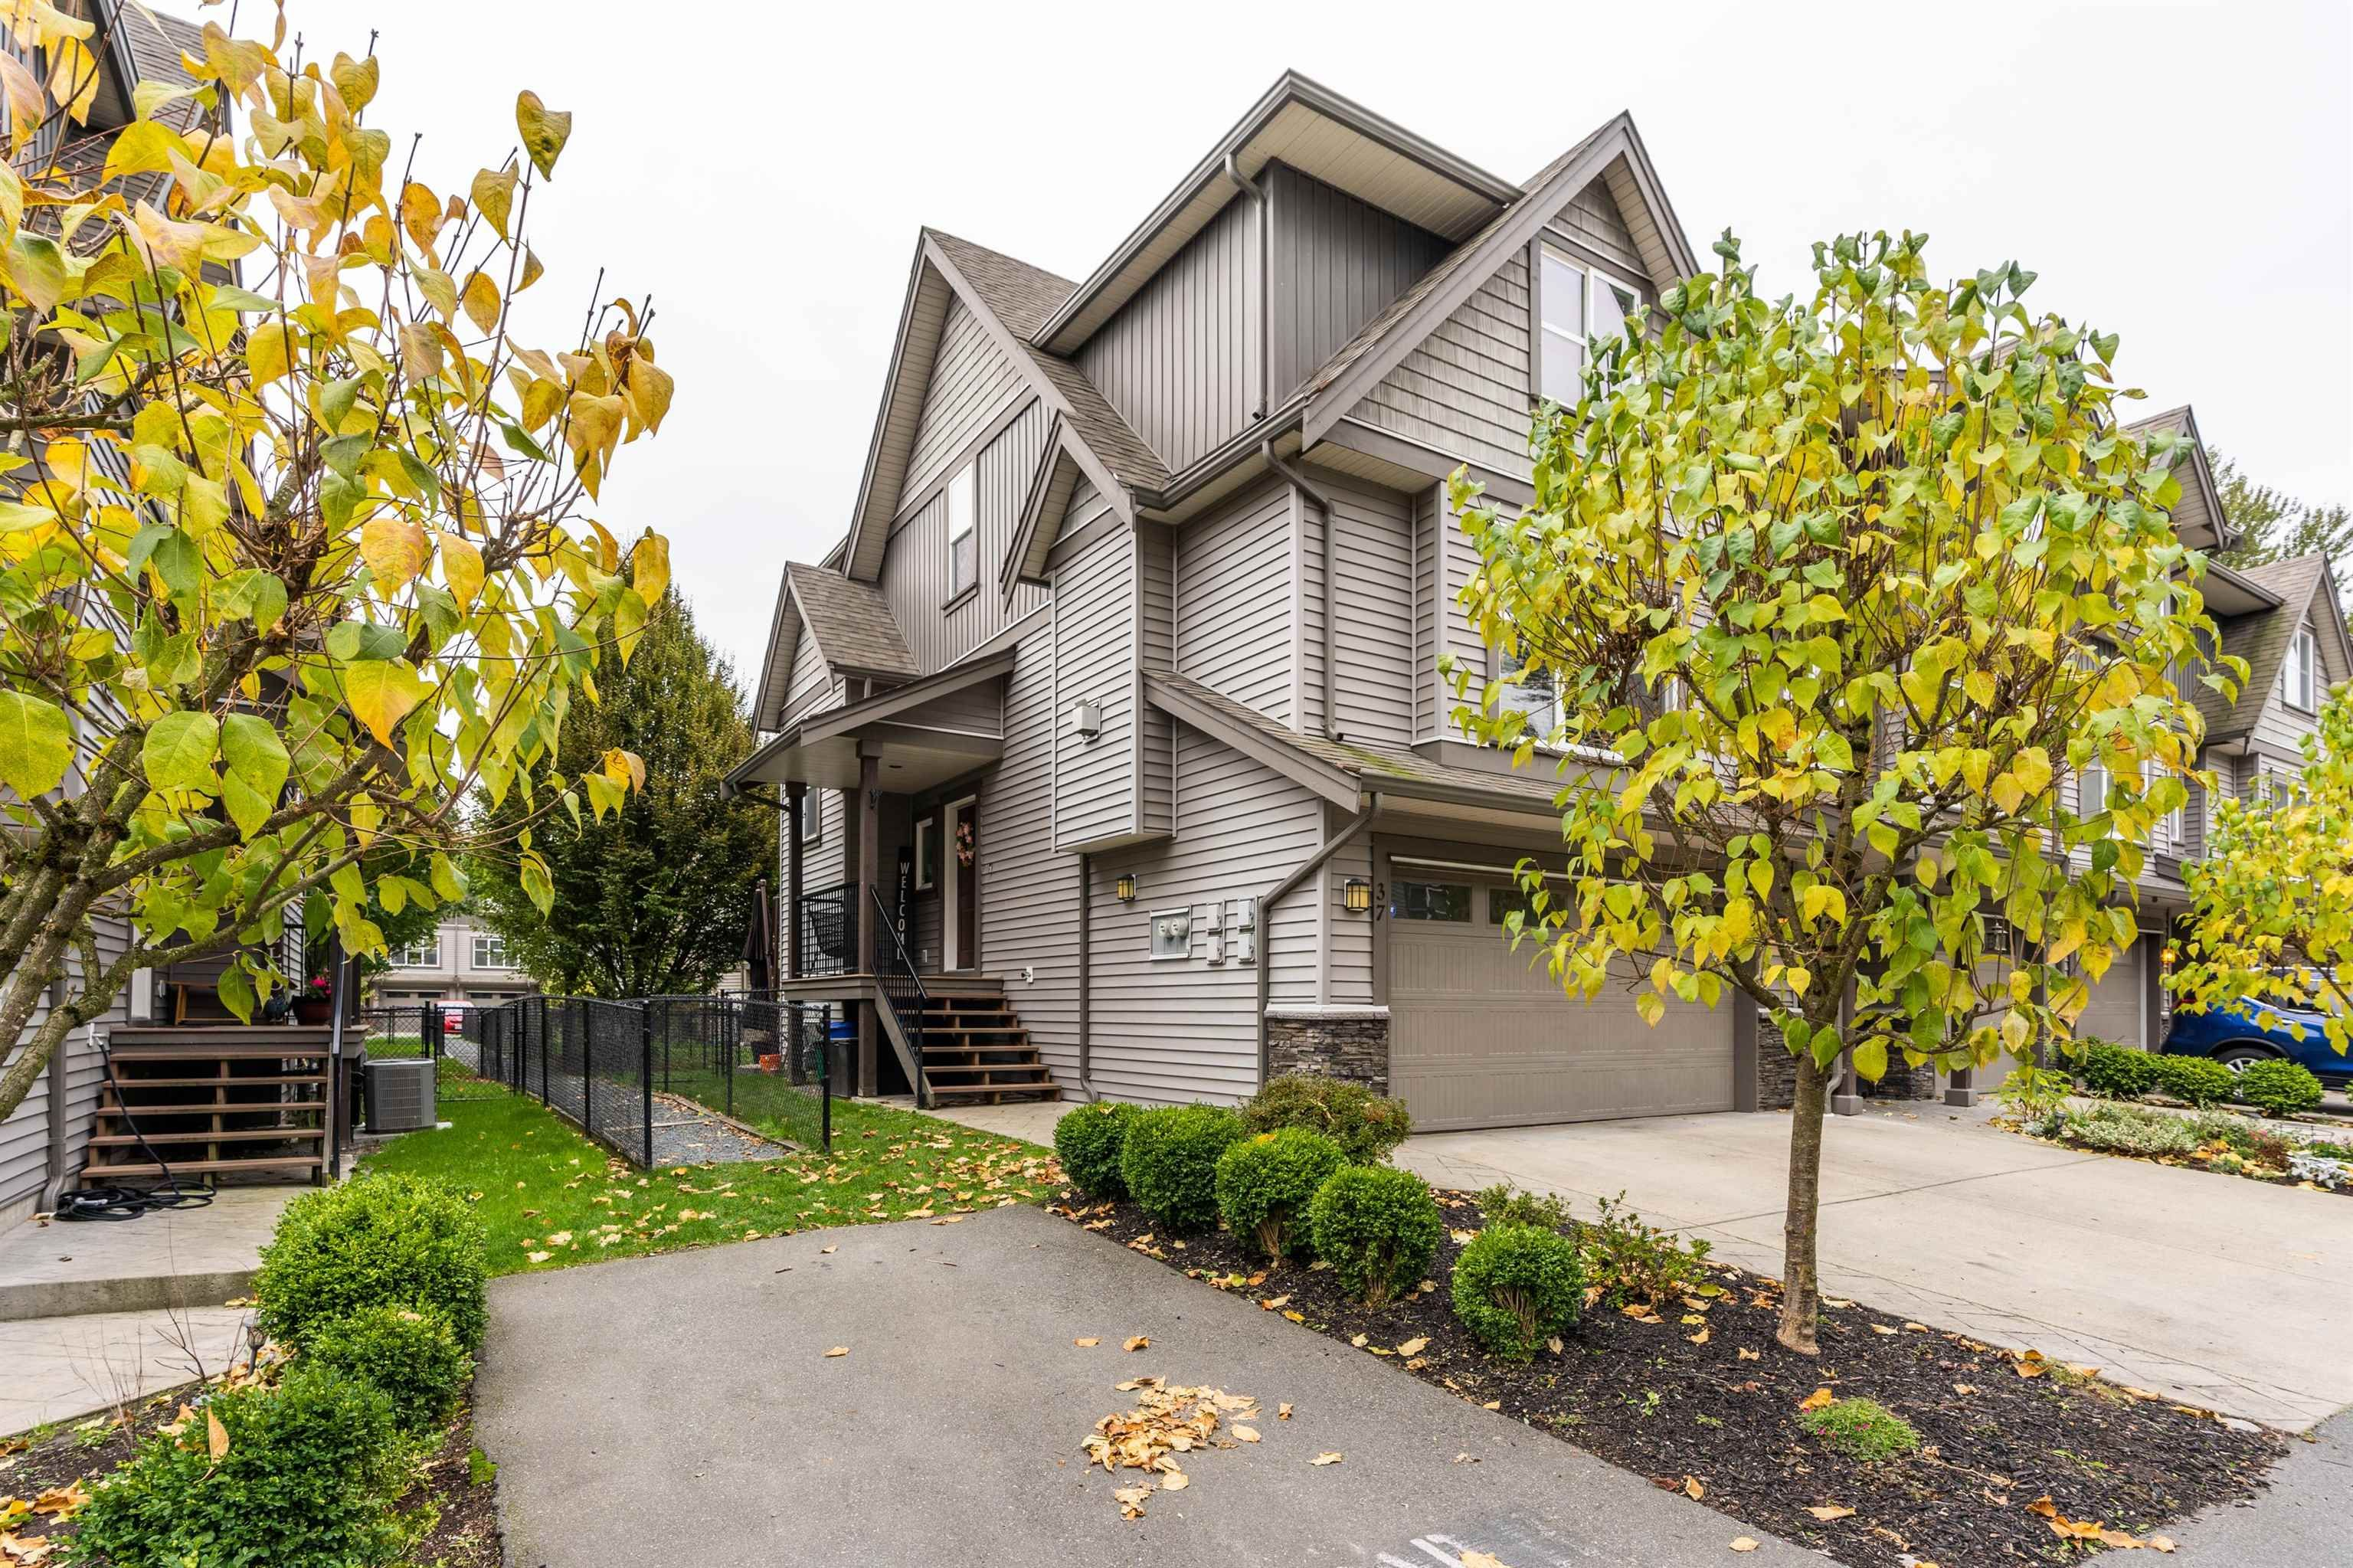 """Main Photo: 37 45085 WOLFE Road in Chilliwack: Chilliwack W Young-Well Townhouse for sale in """"TOWNSEND TERRACE"""" : MLS®# R2625489"""